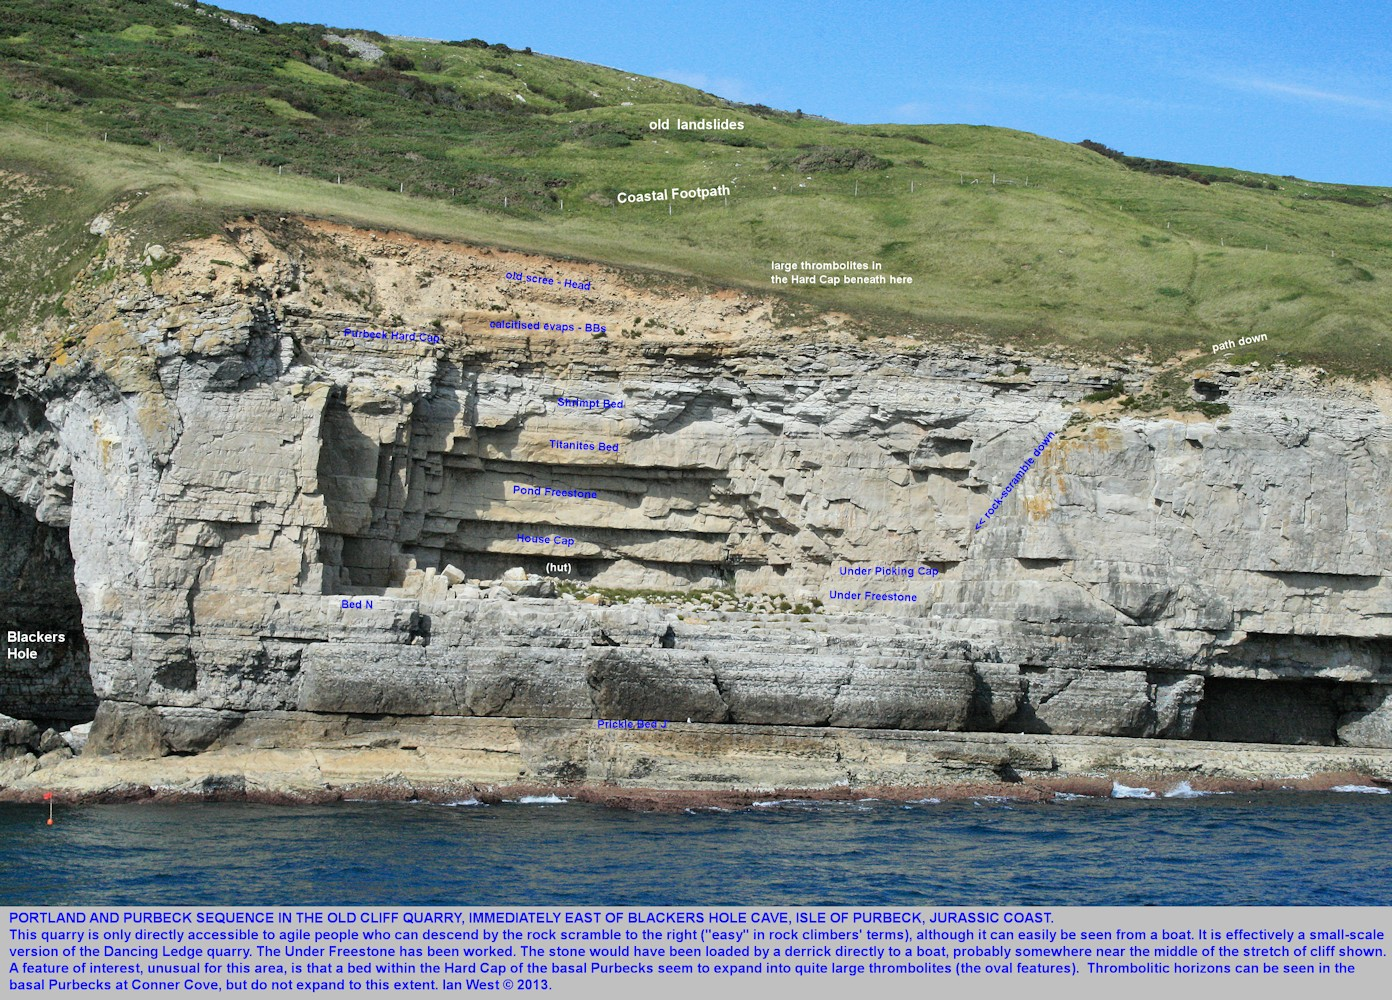 Details of the old quarry immediately east of Blackers Hole, near Swanage, Dorset, showing thrombolites in the Hard Cap of the basal Purbeck - enlarged view